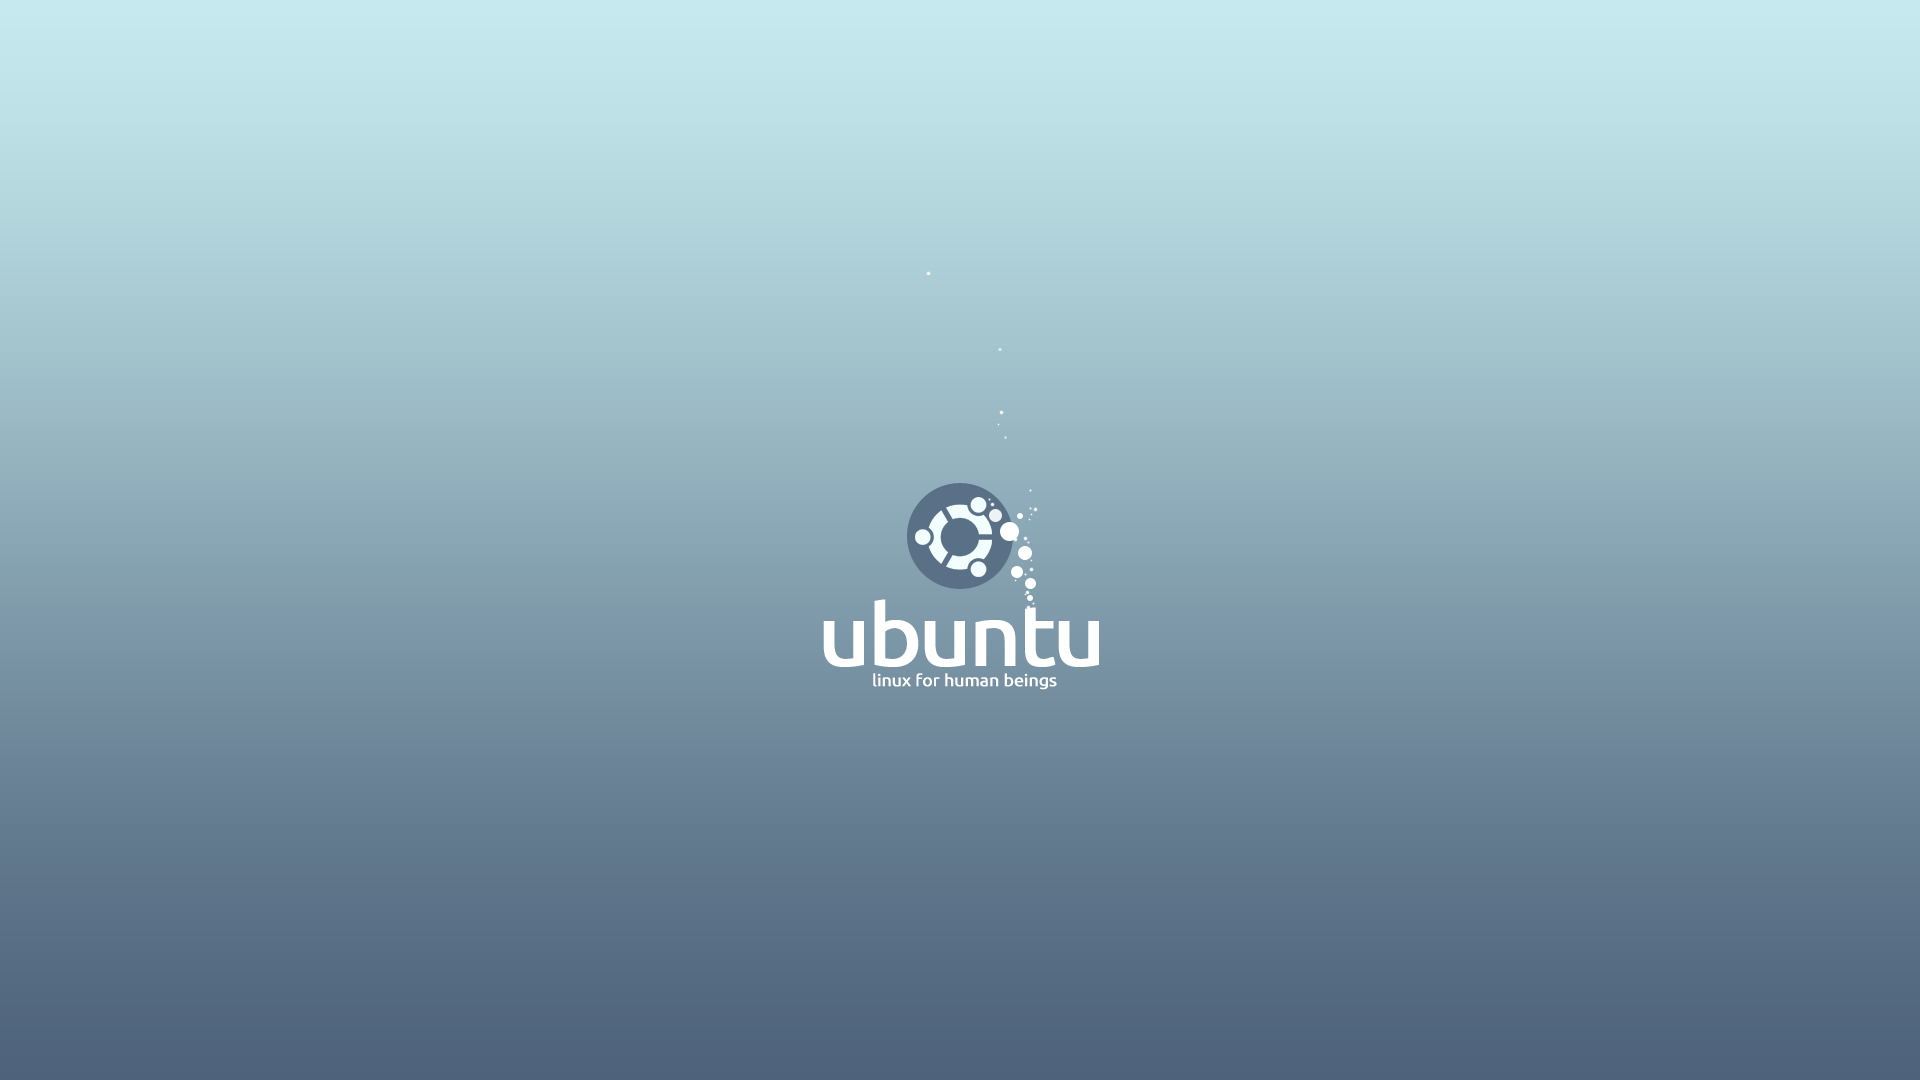 Ubuntu Wallpapers Hd wallpaper   627109 1920x1080